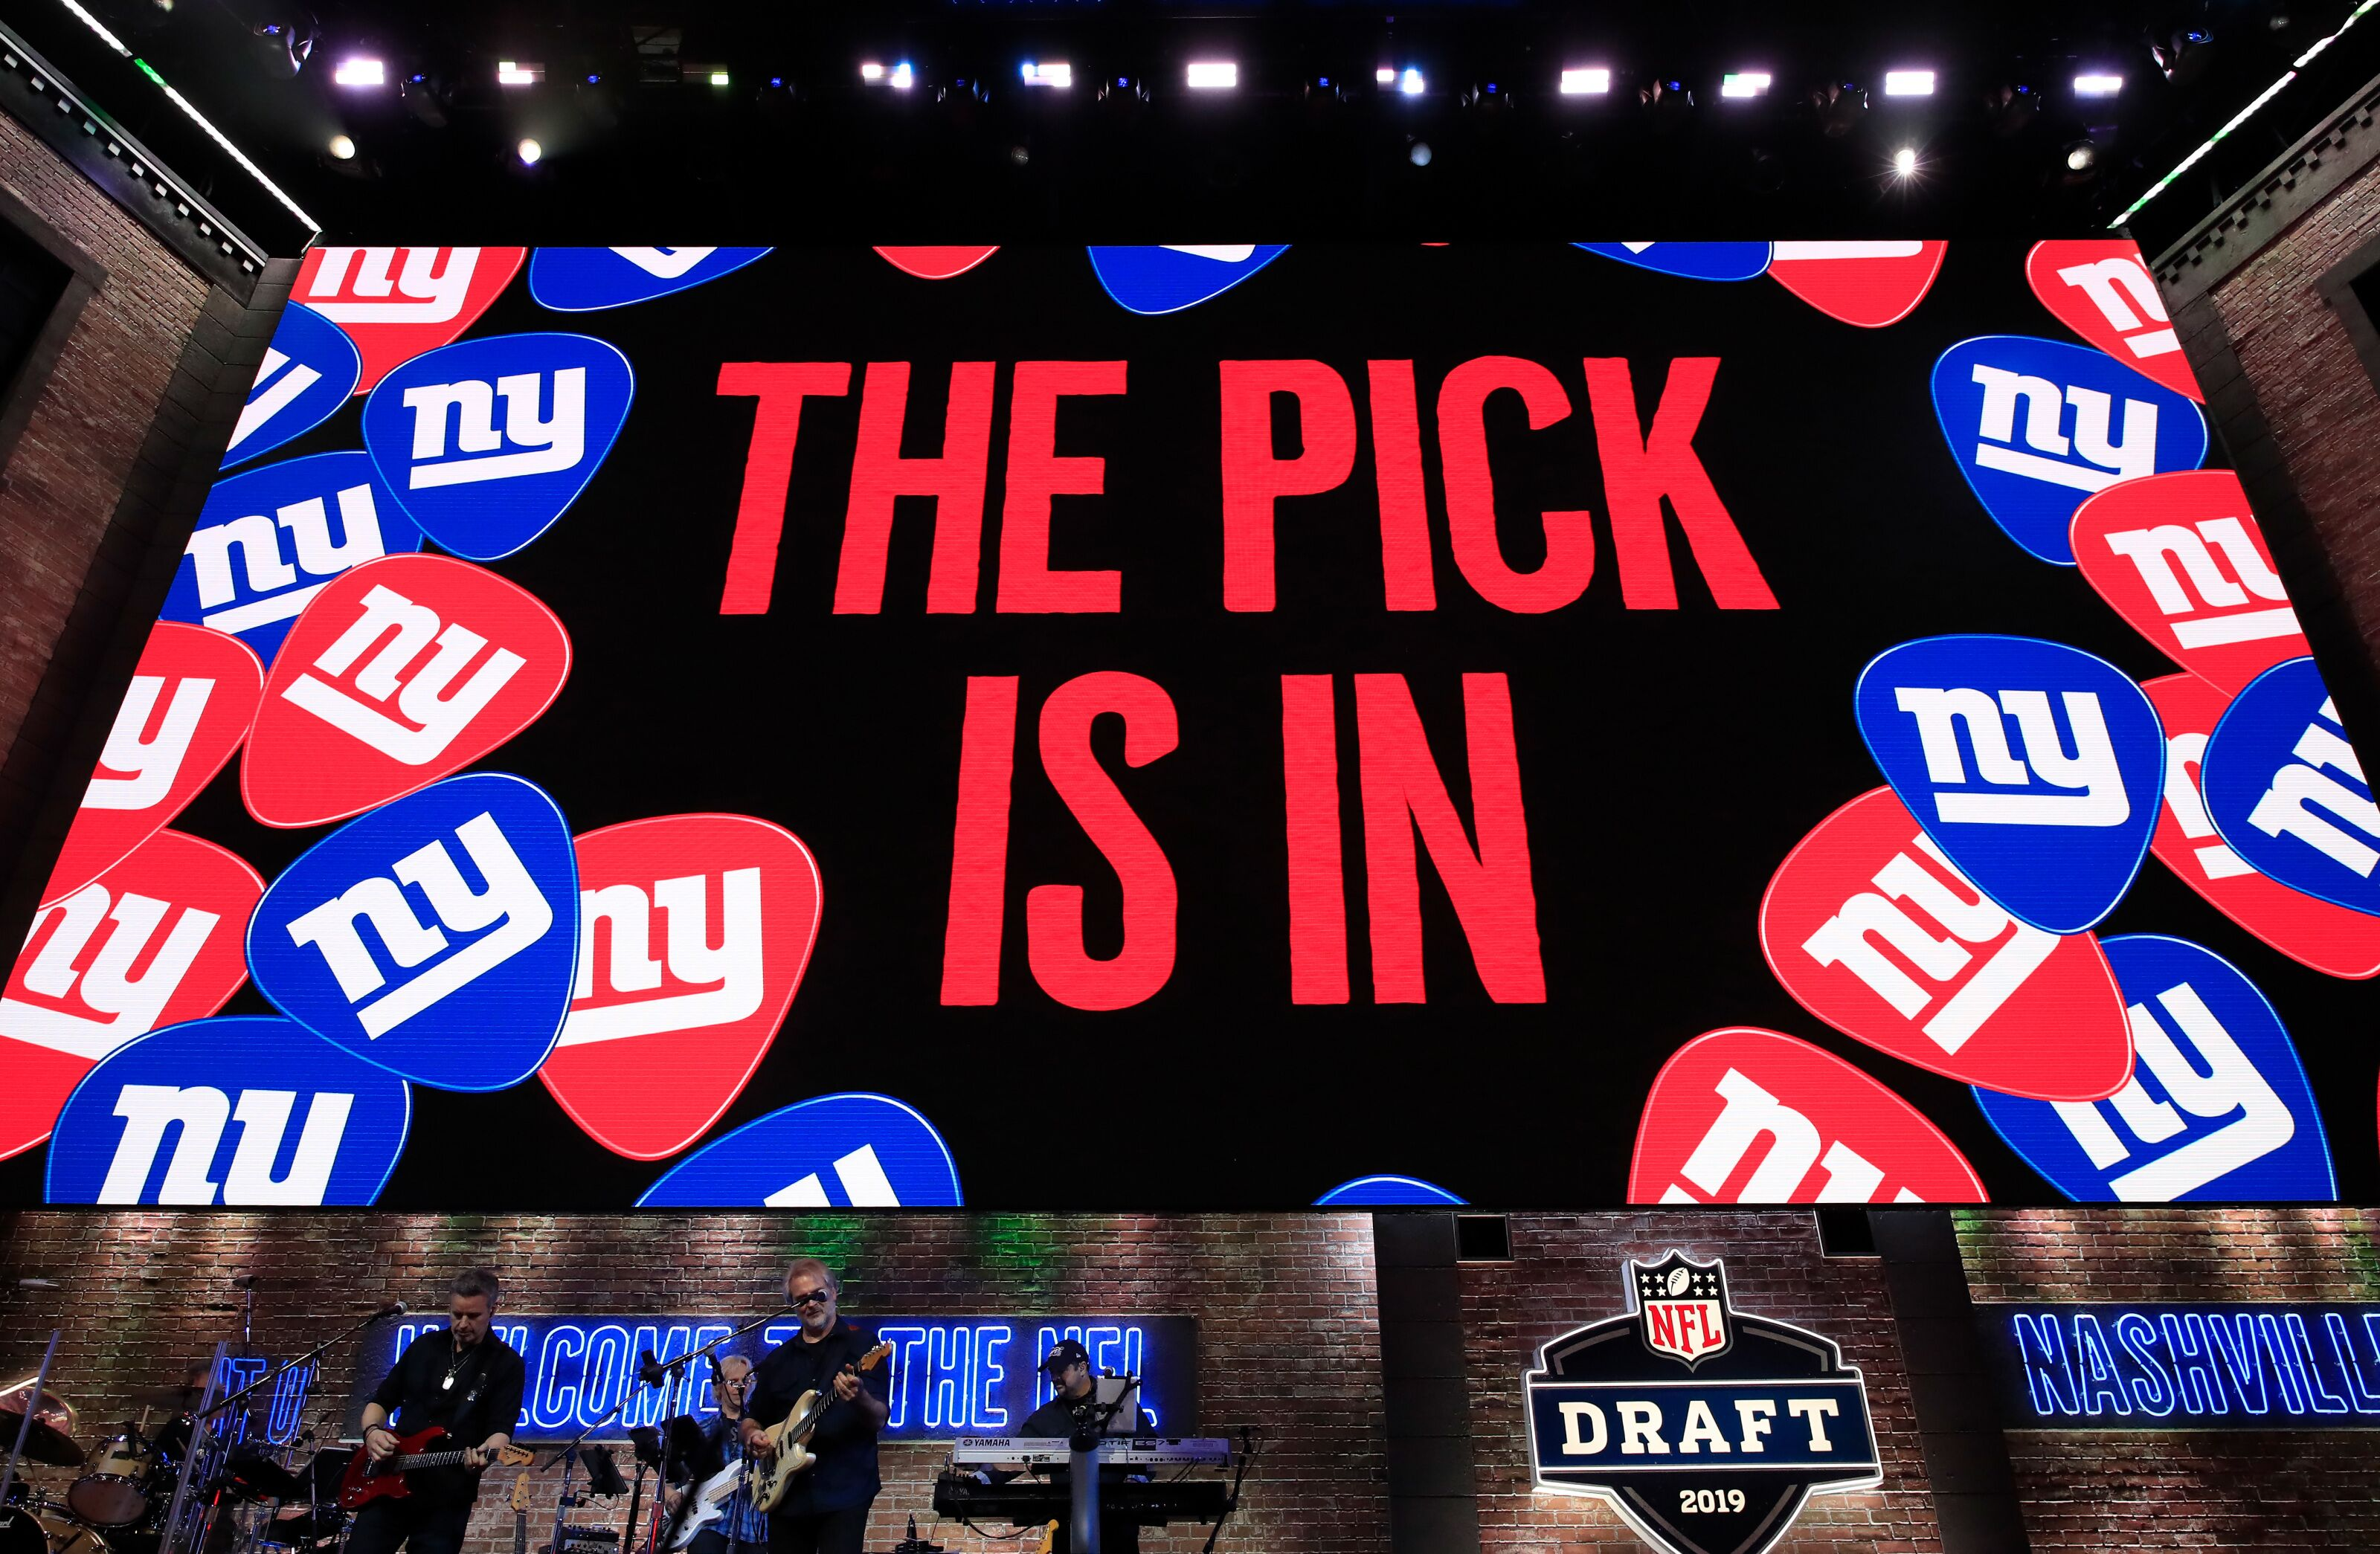 New York Giants Football 2020 7 Round Mock Draft Version 1 0